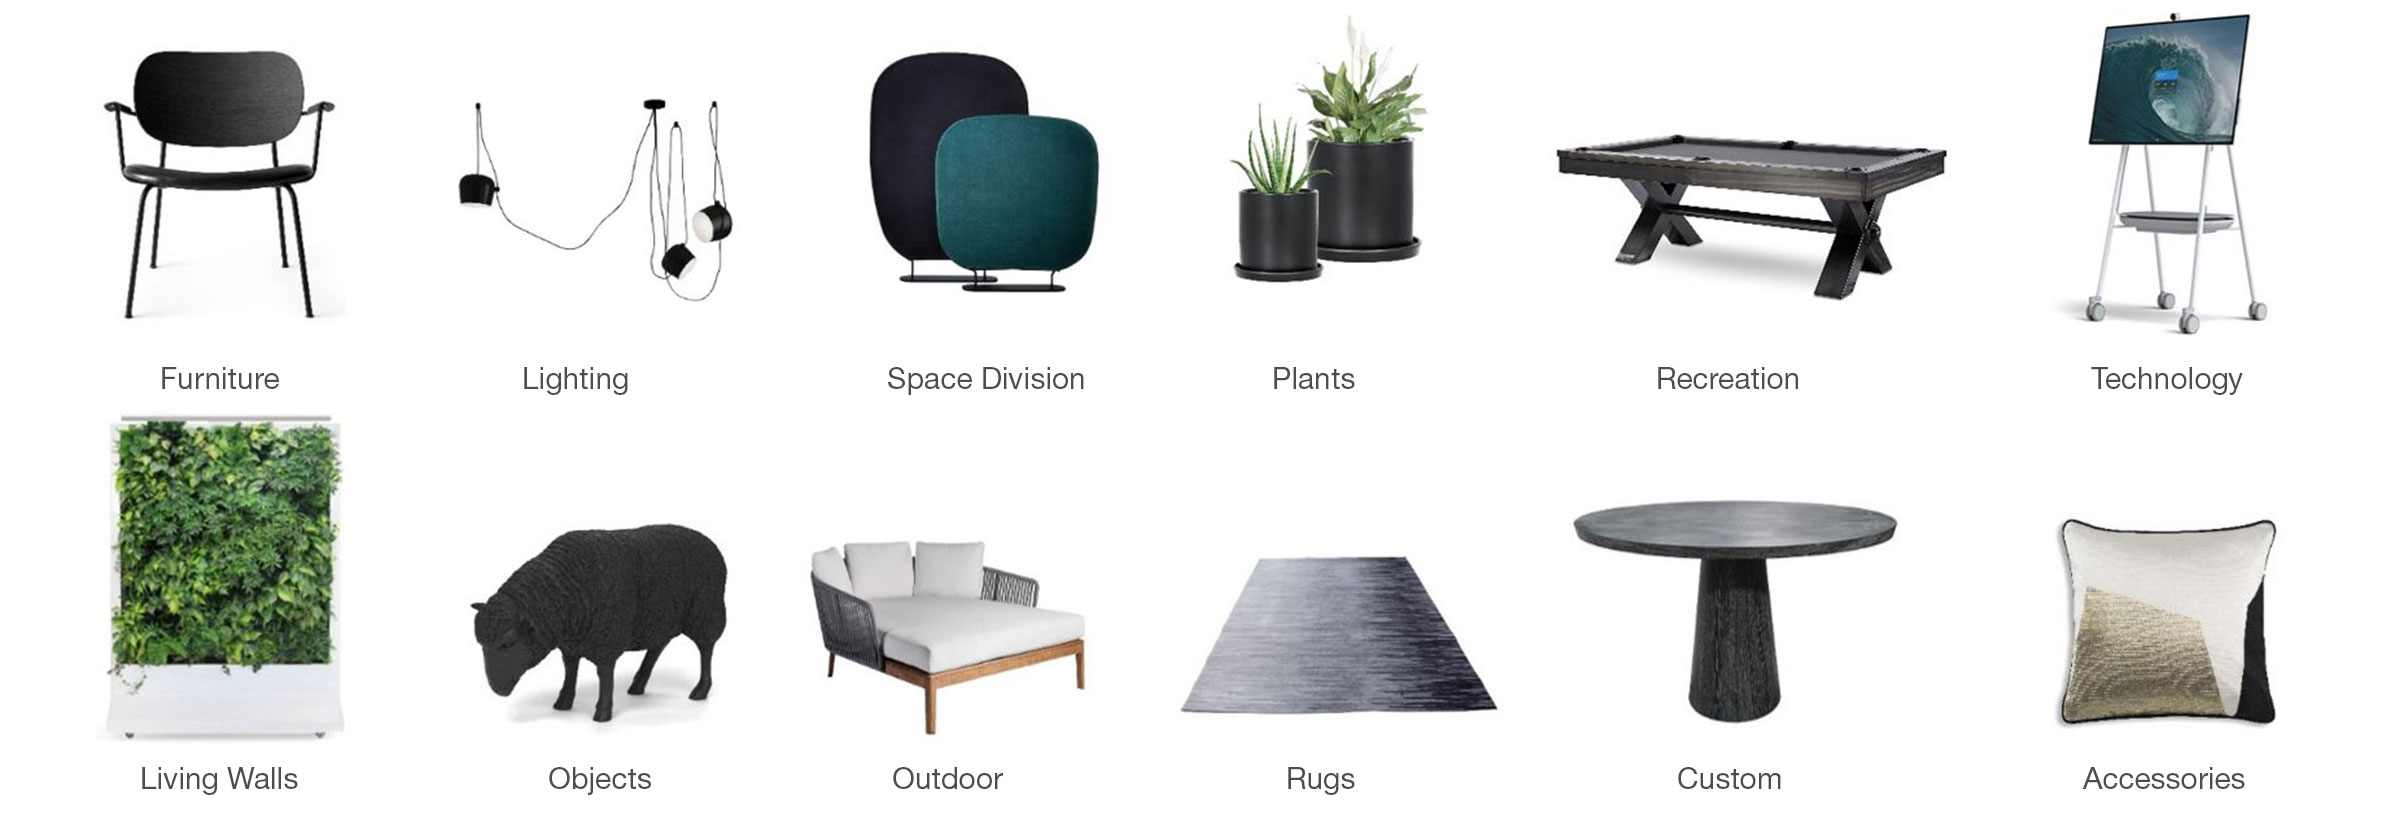 A broad variety of ancillary products for amenity spaces